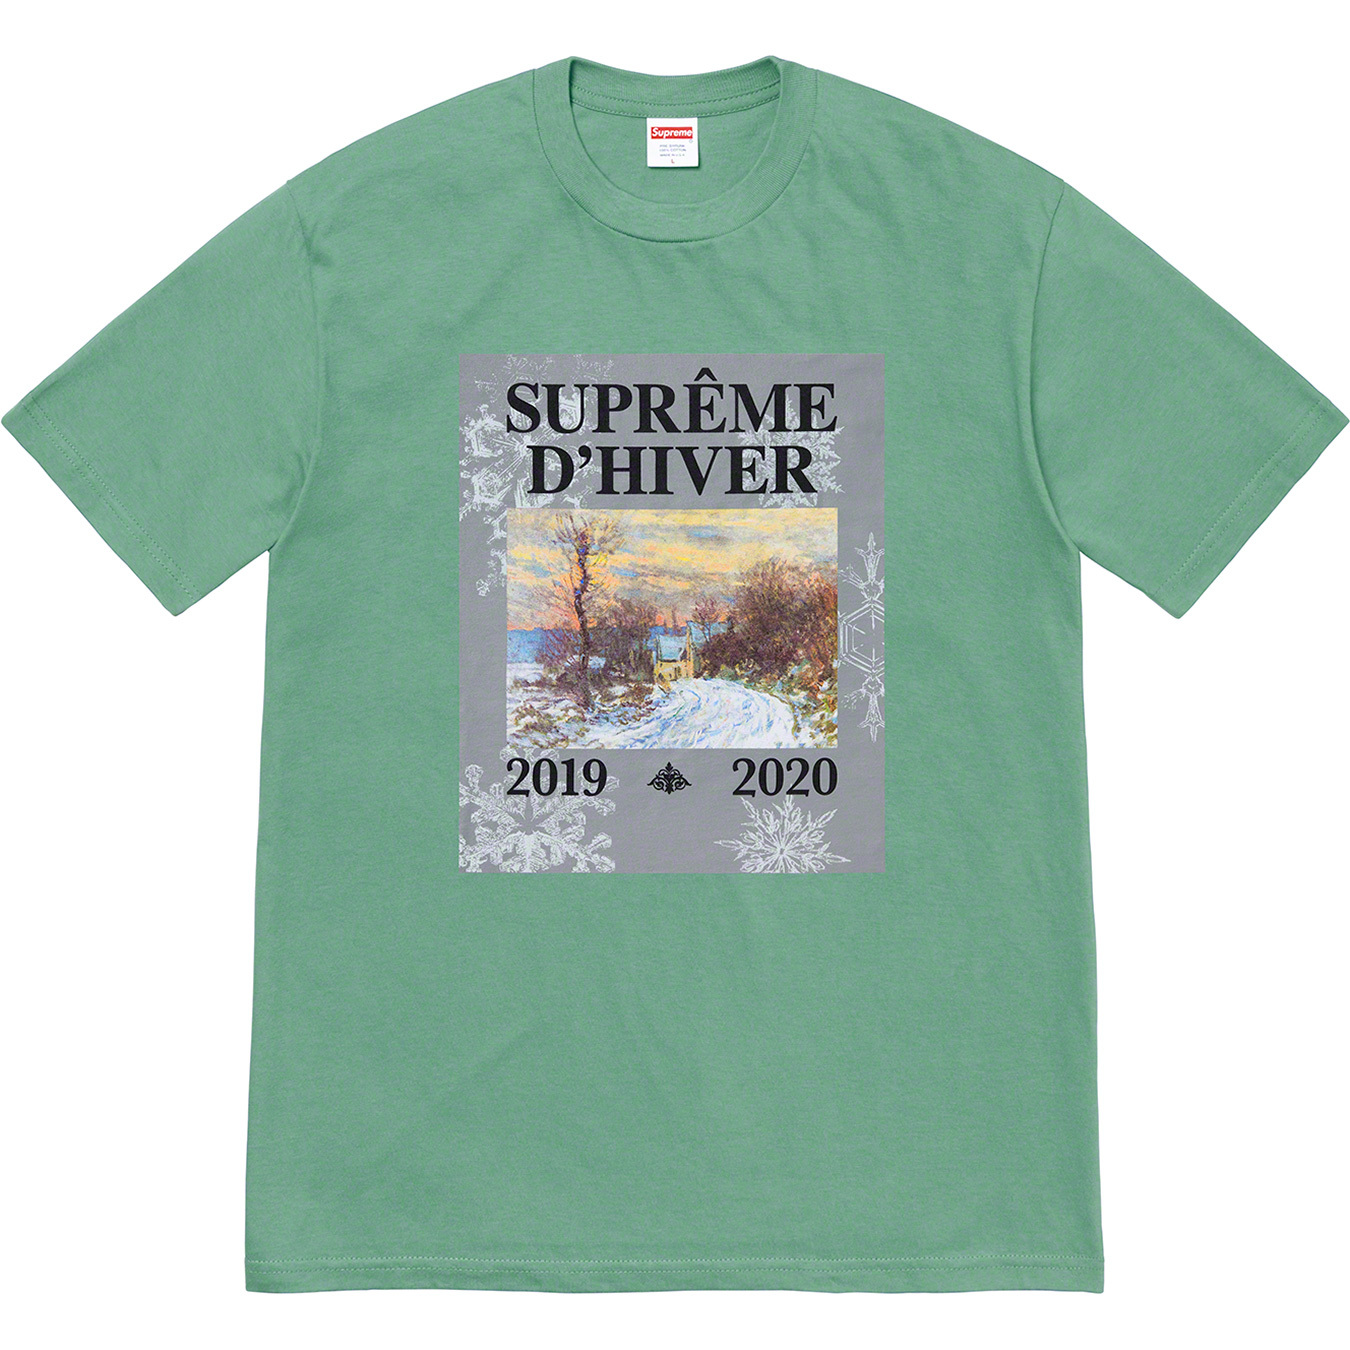 supreme-online-store-19aw-19fw-20191221-week17-dhiver-tee